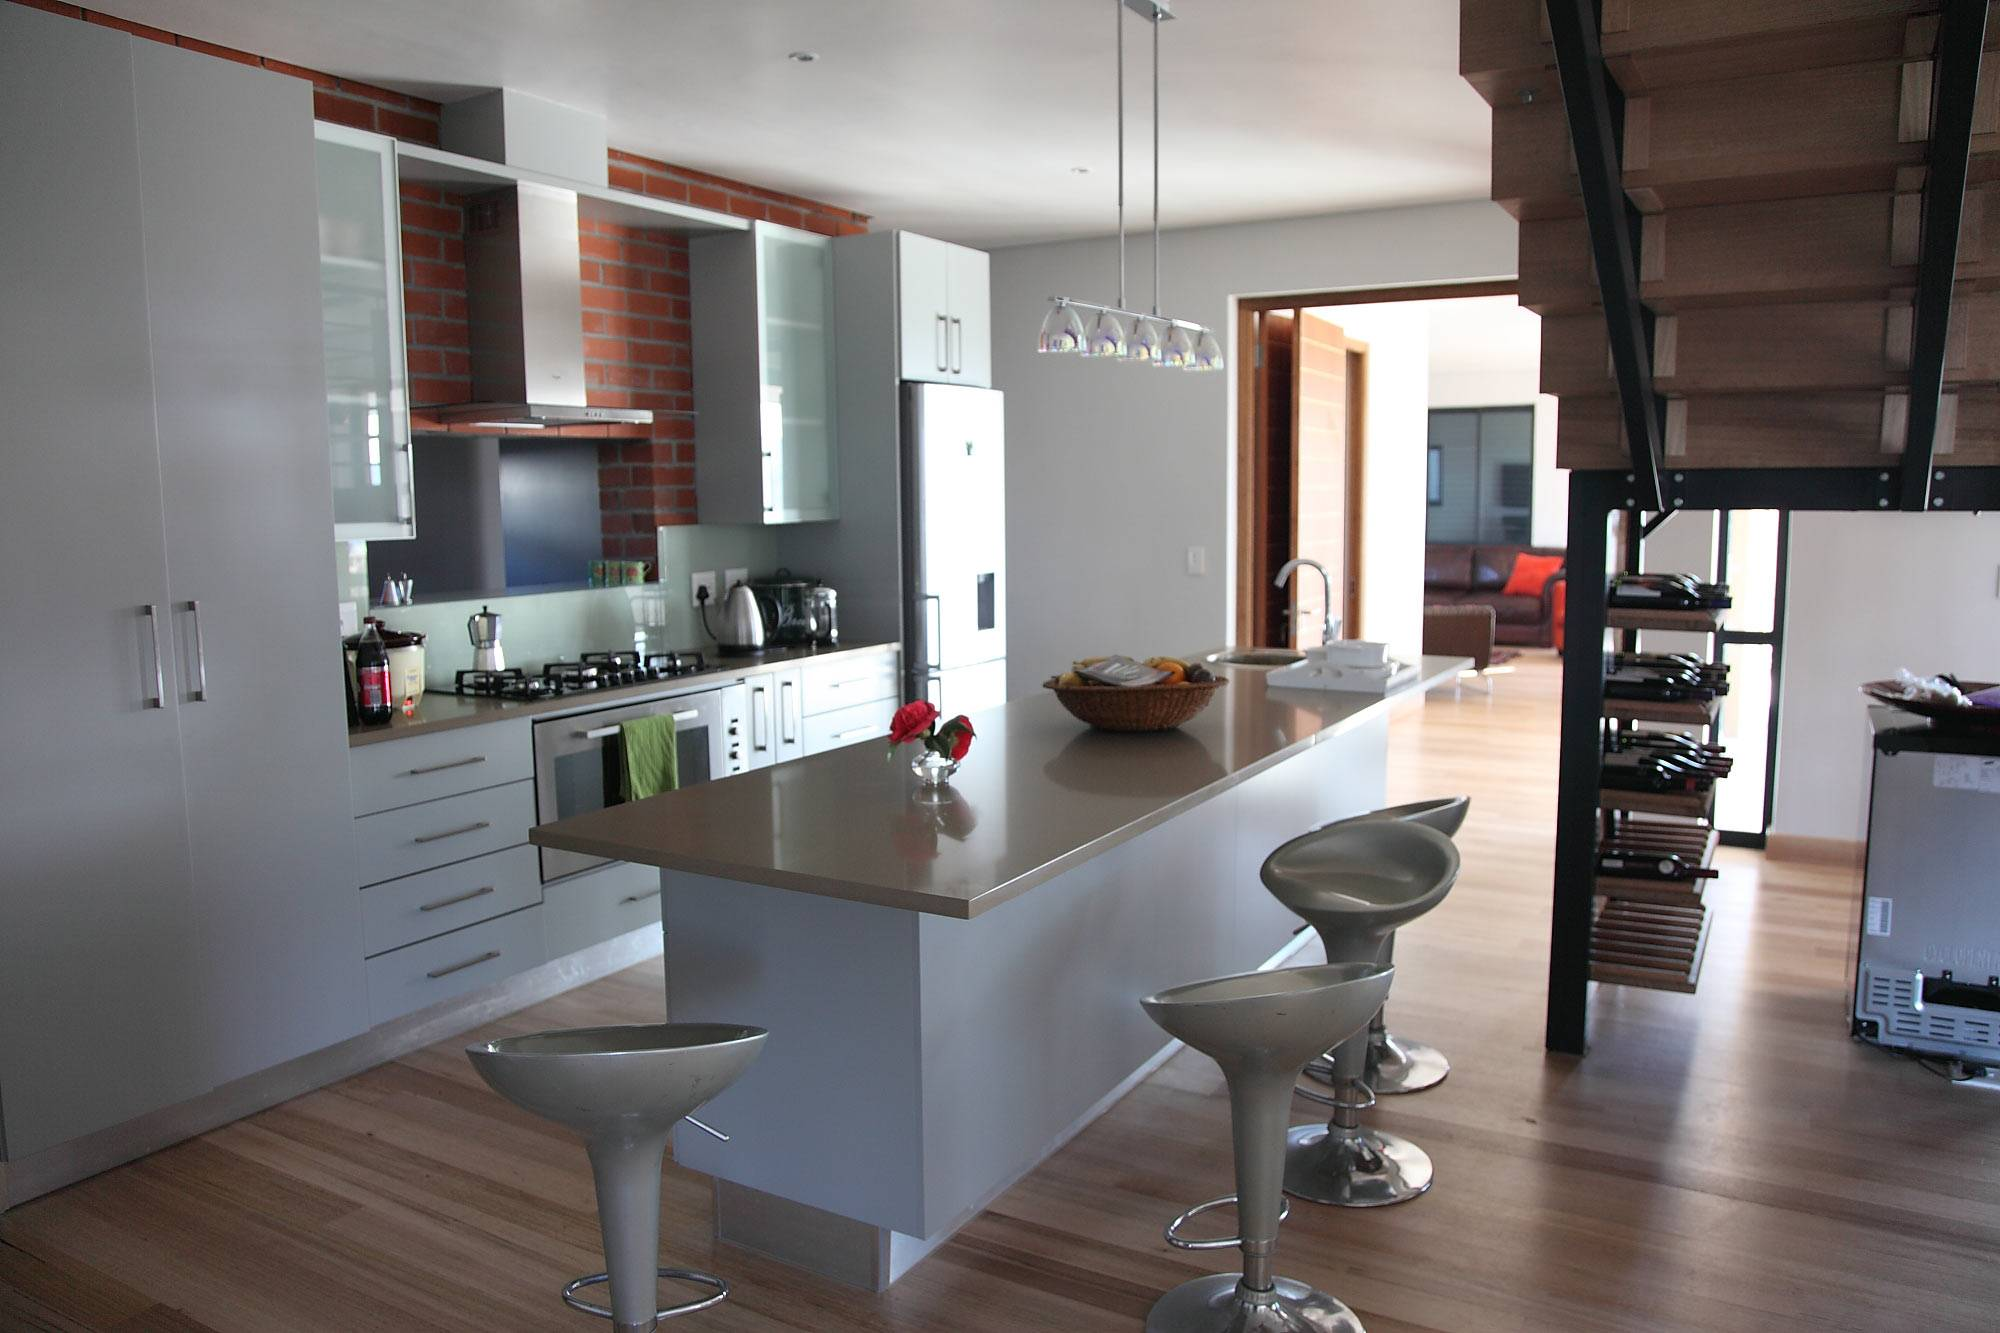 Kitchen interior